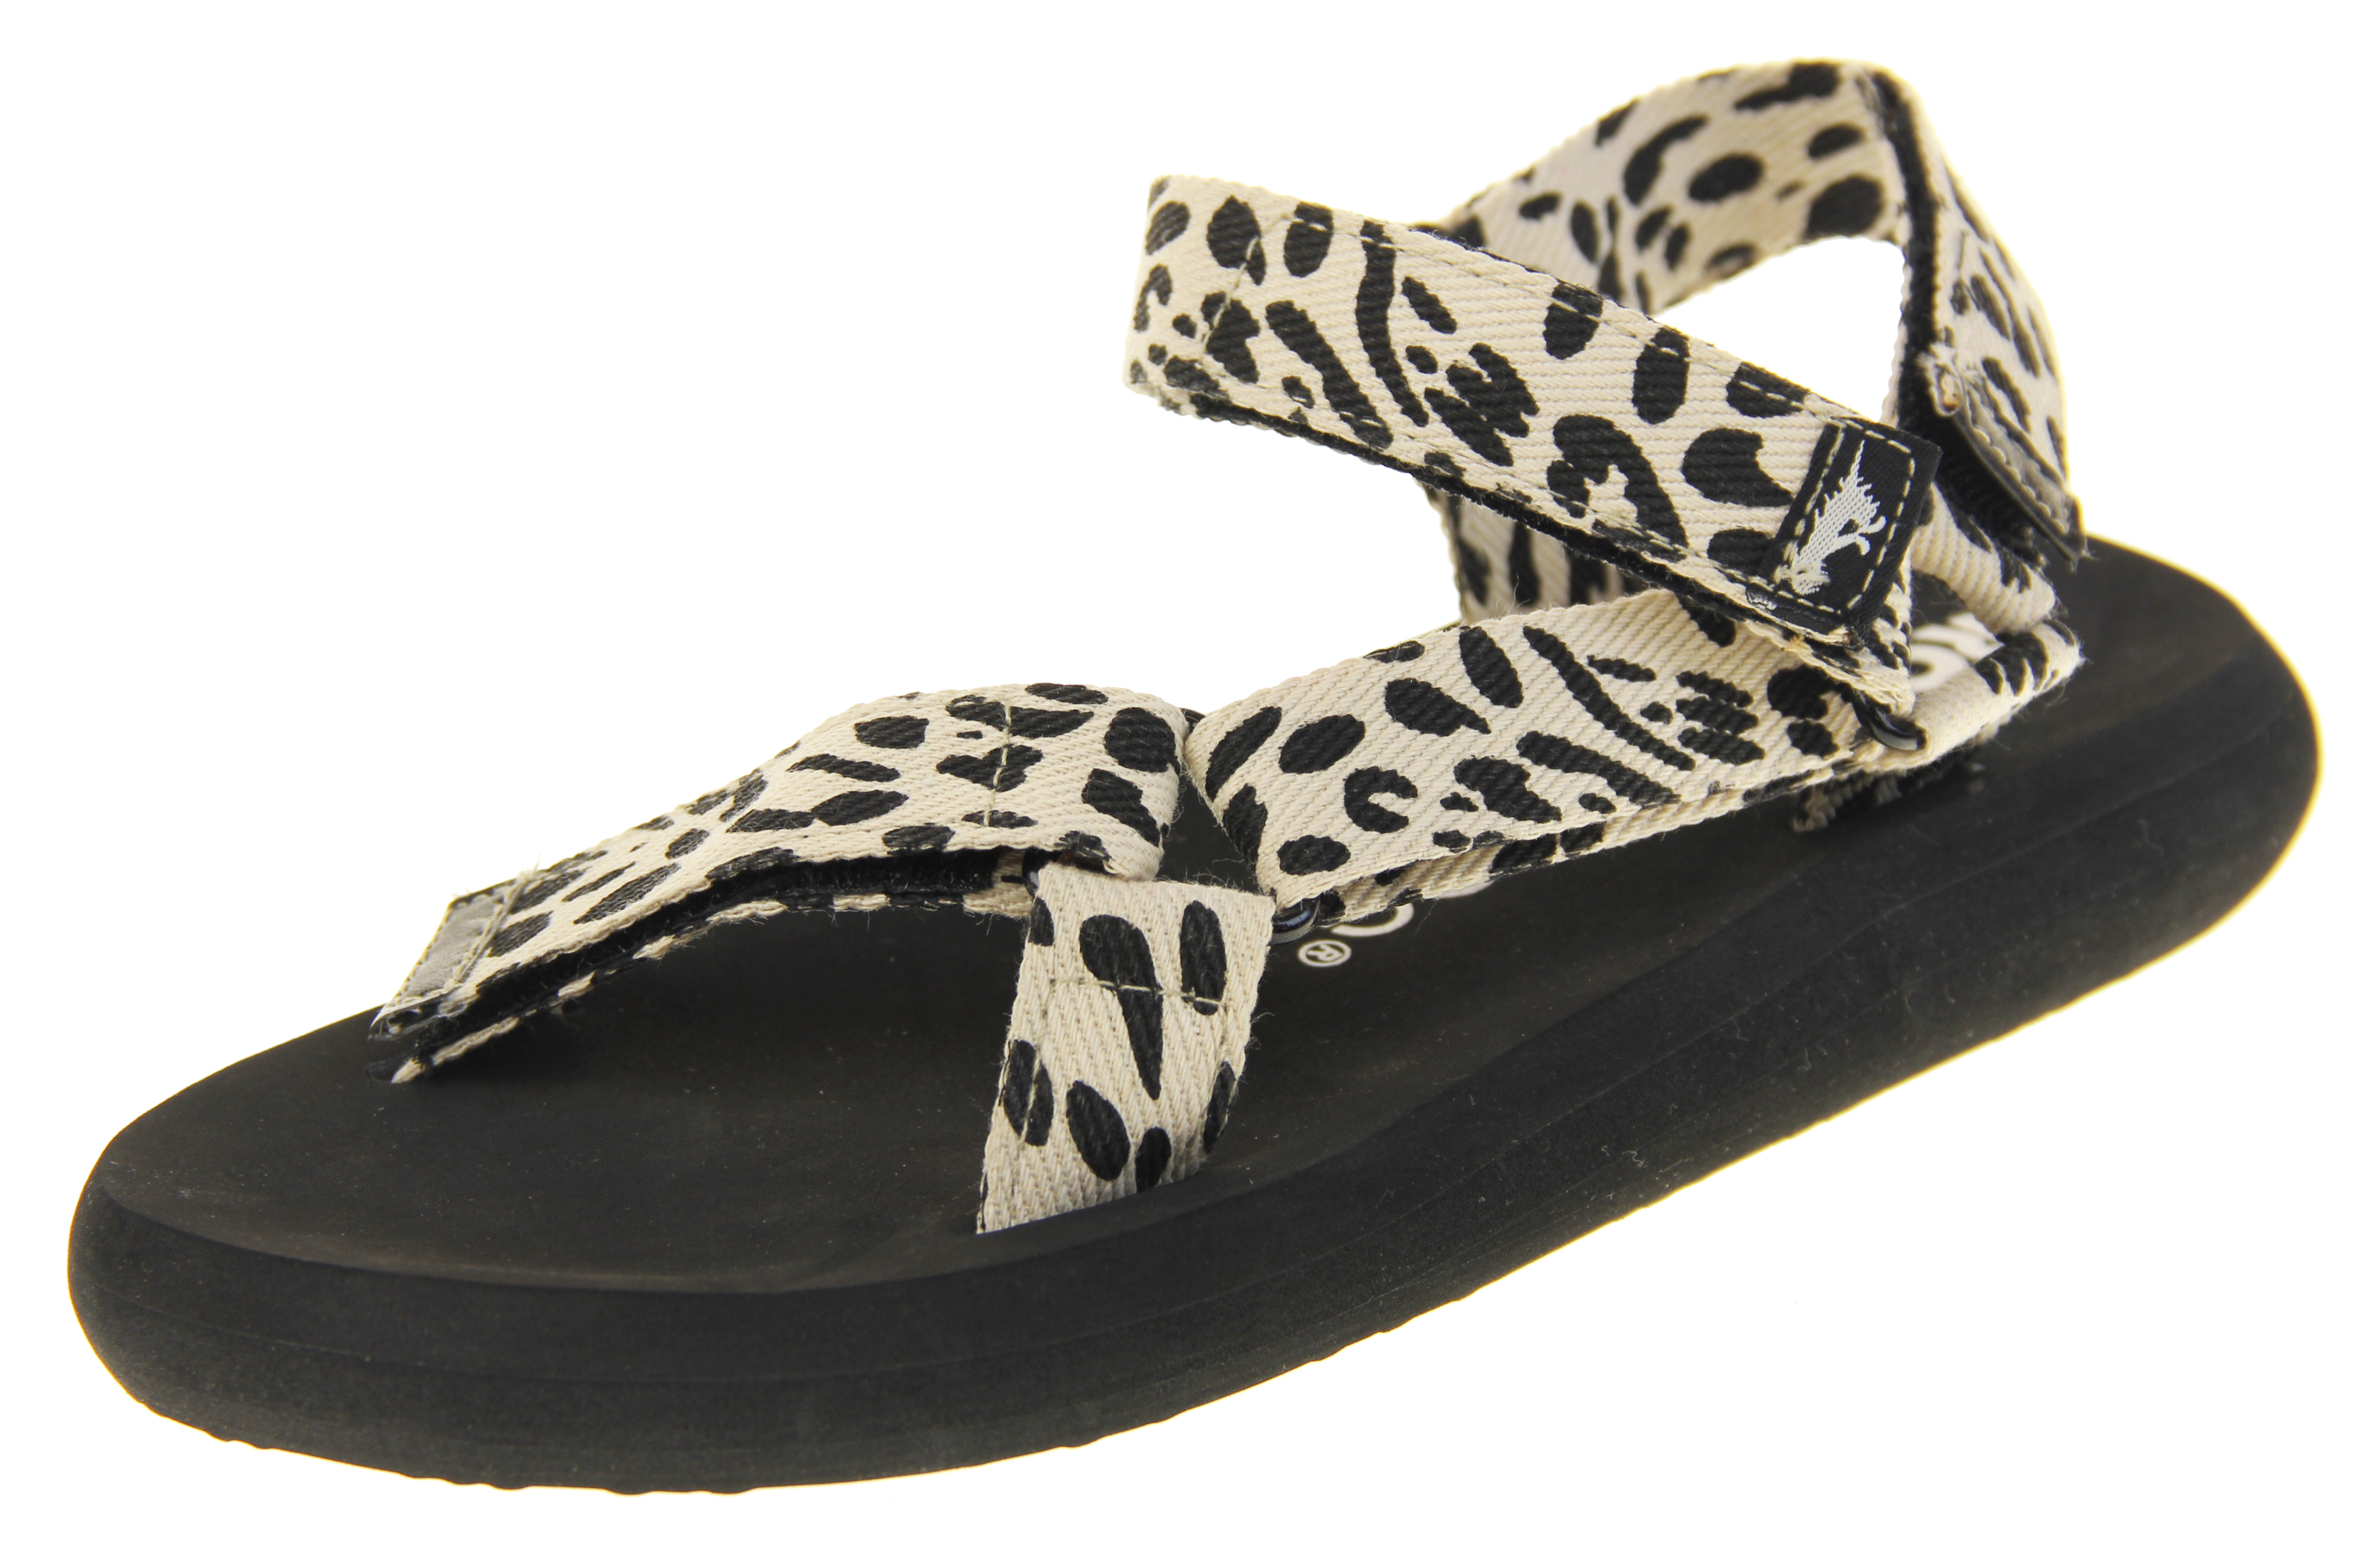 c40f2410de0 Womens Rocket Dog SurfSide Sandals